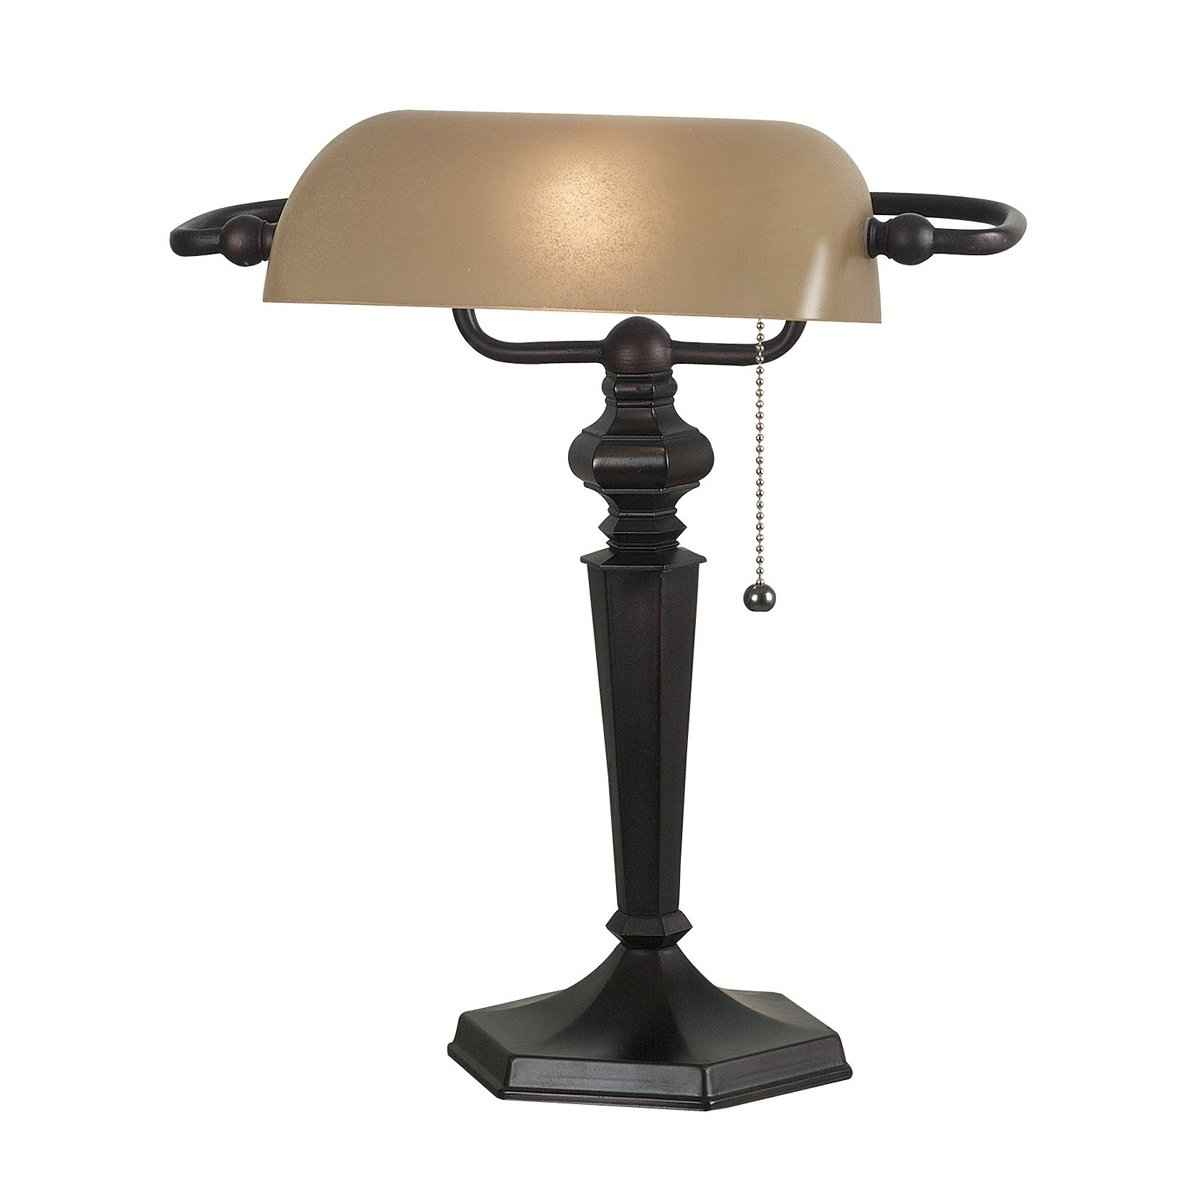 Kenroy Chesapeake Bankers Classic Desk Lamp